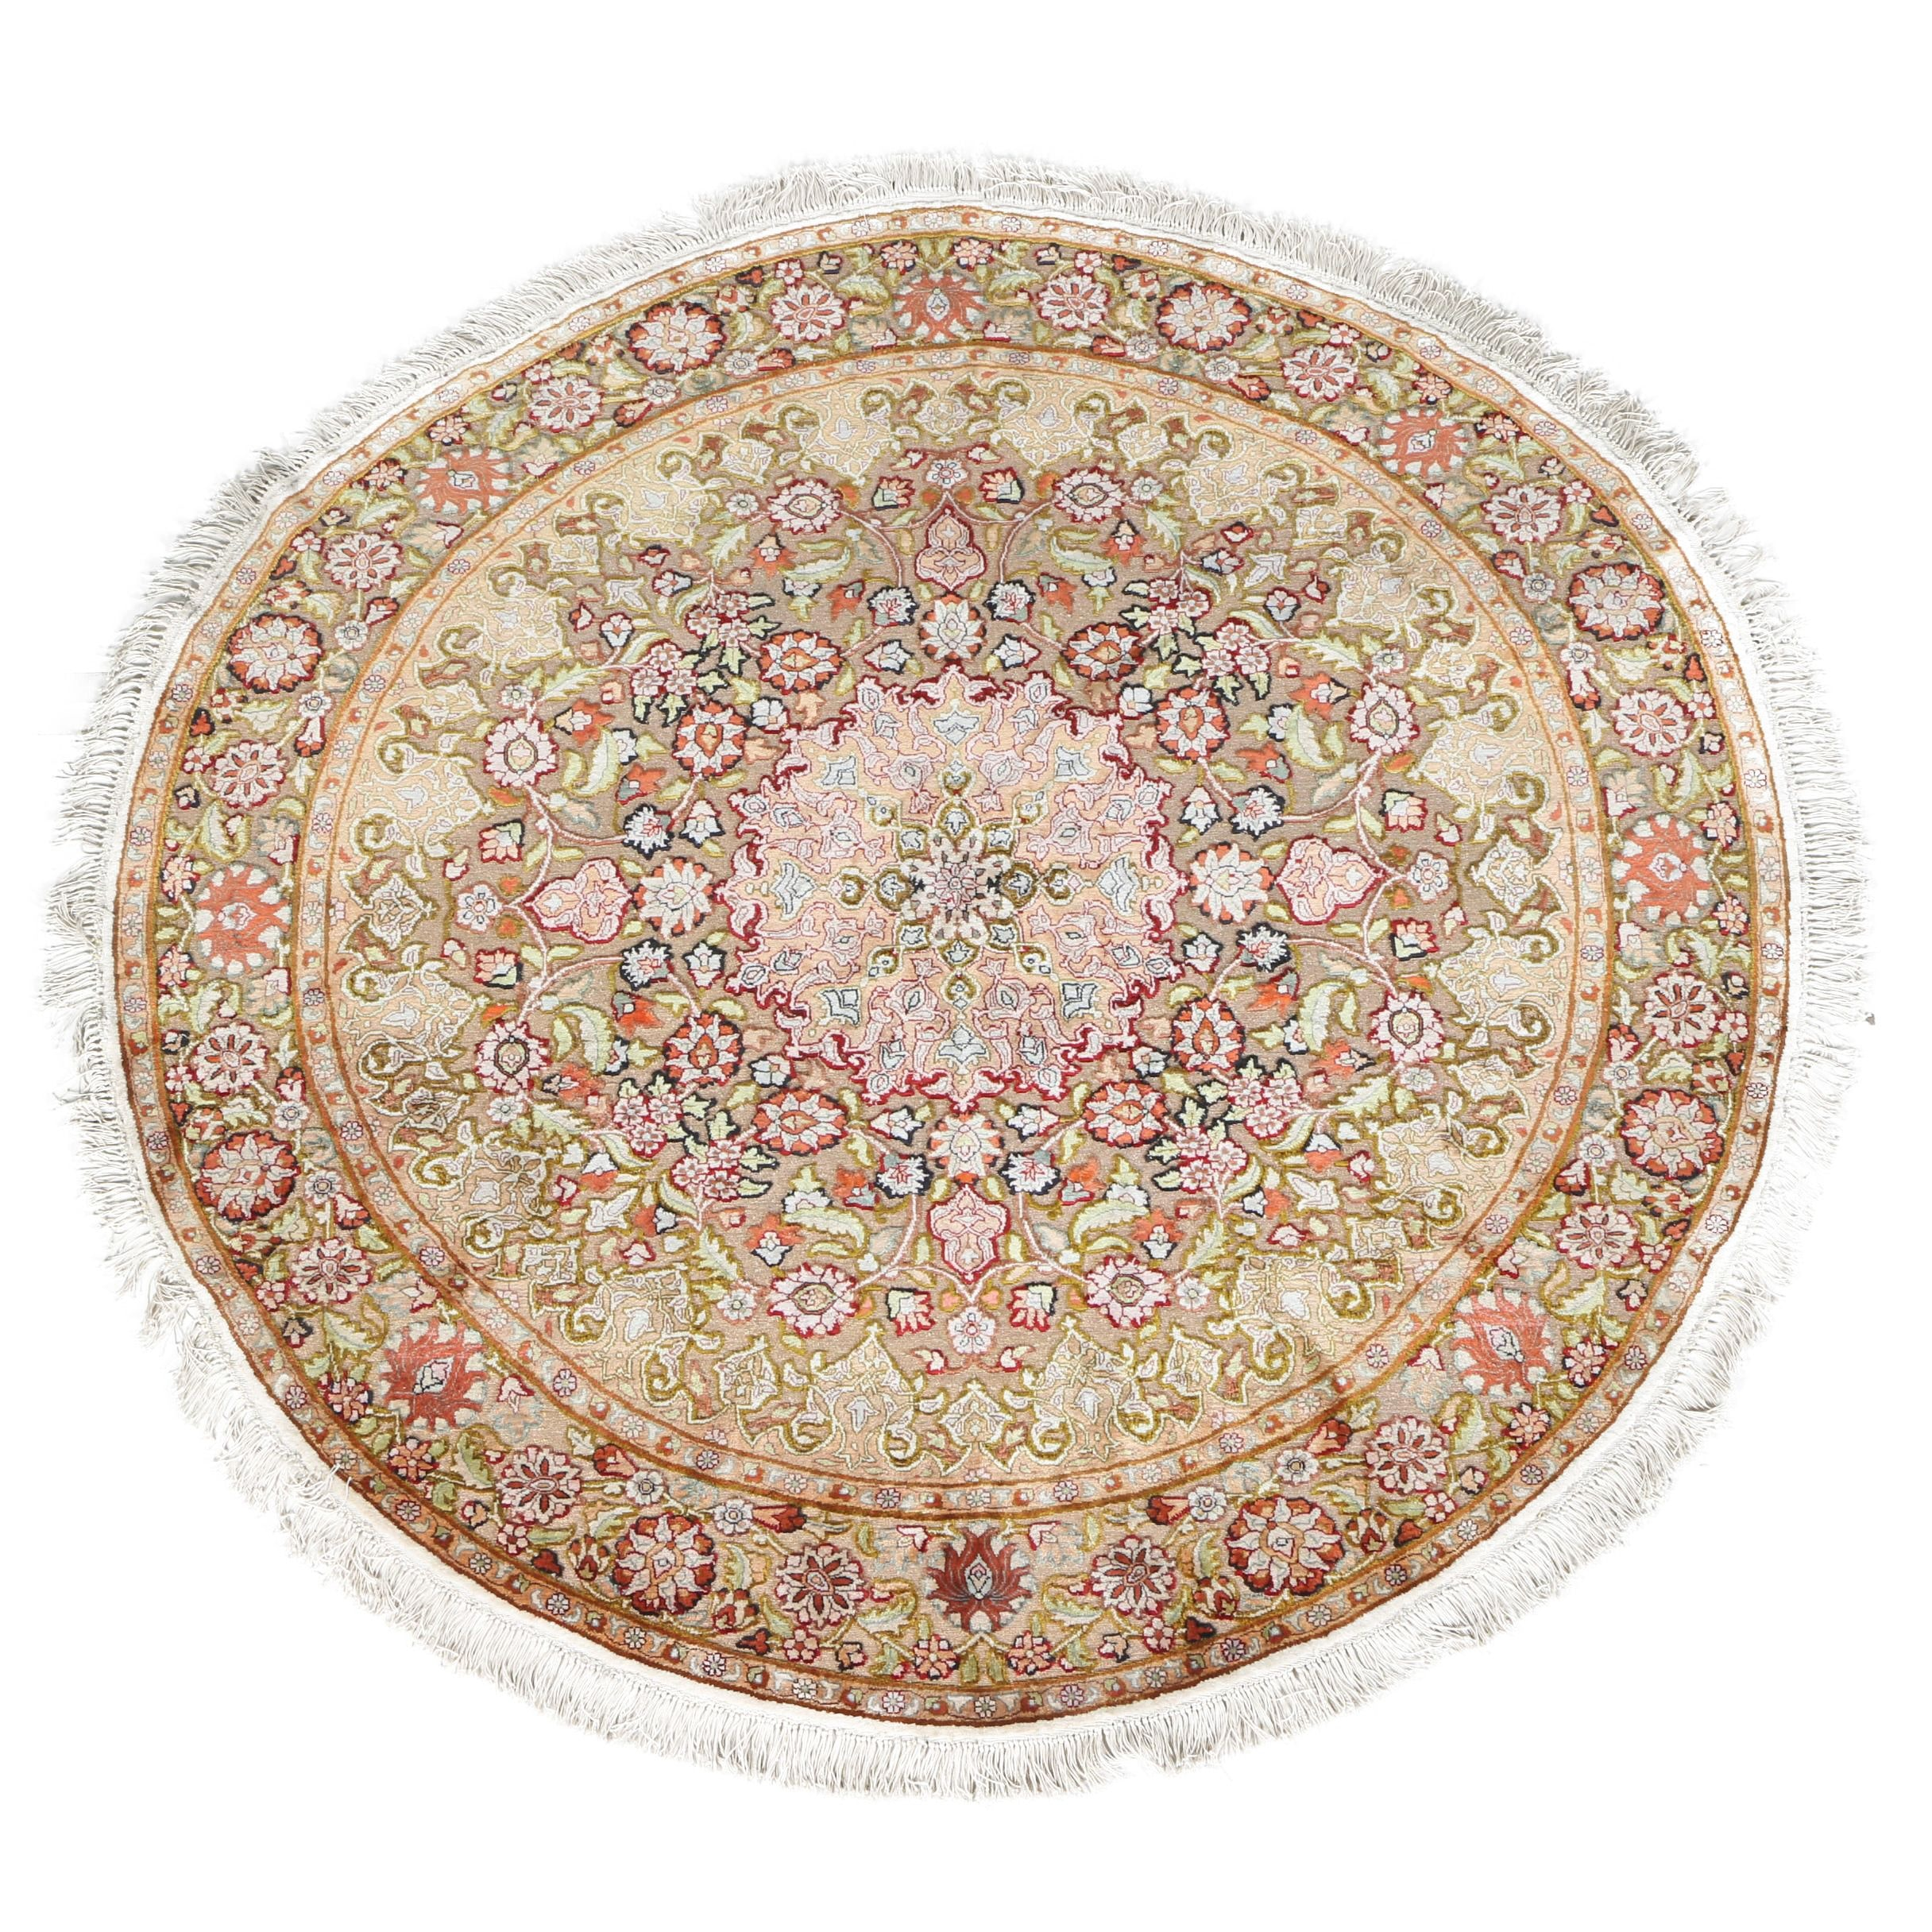 Power Loomed Art Silk Indo-Turkish Hereke-Style Round Rug